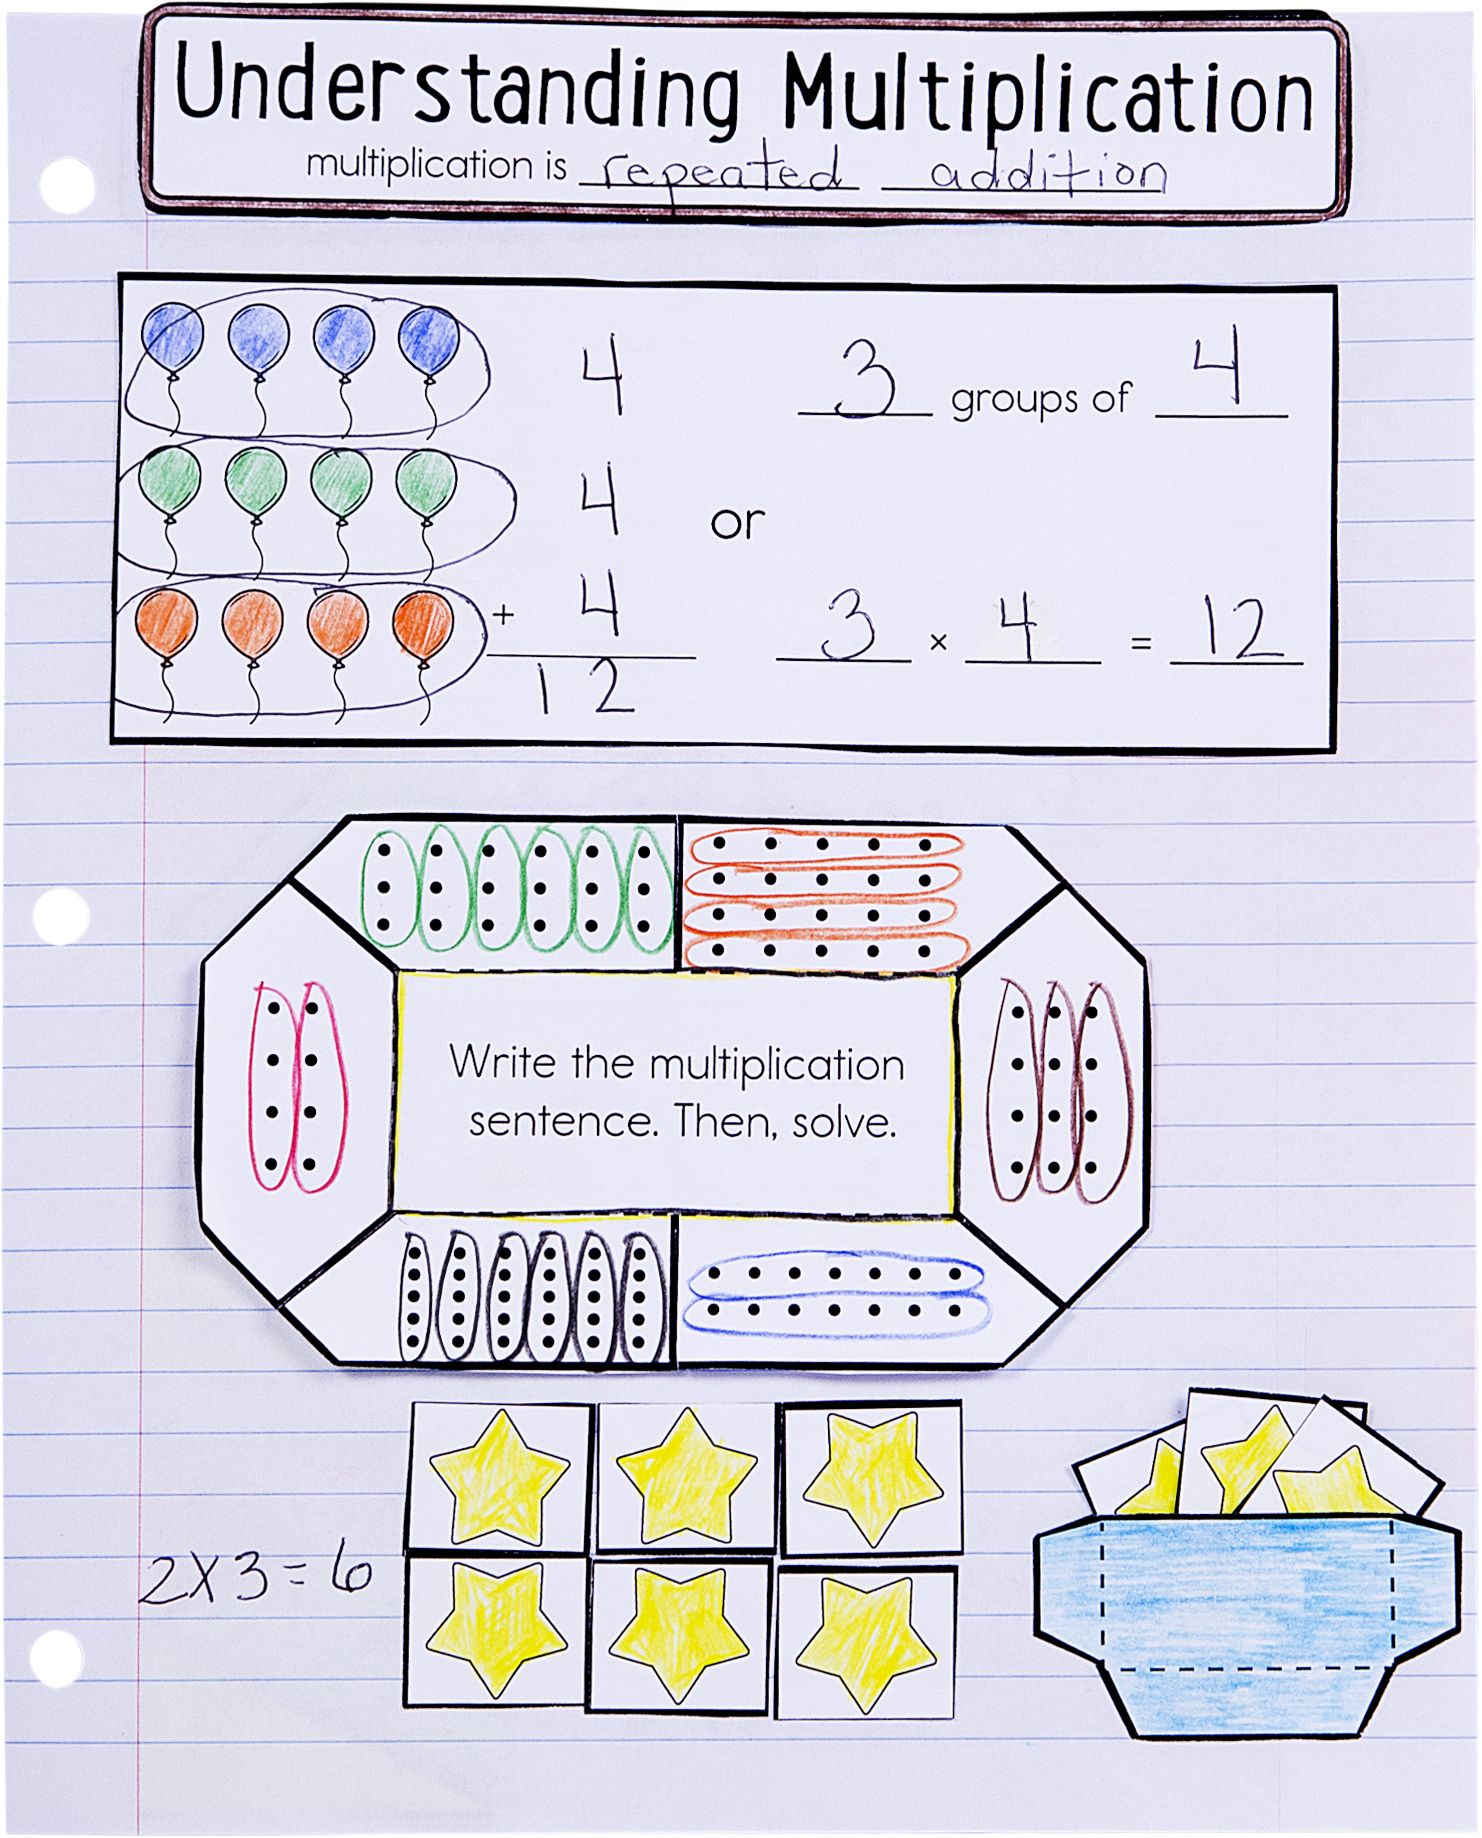 Increase Understanding Of Multiplication Concepts With